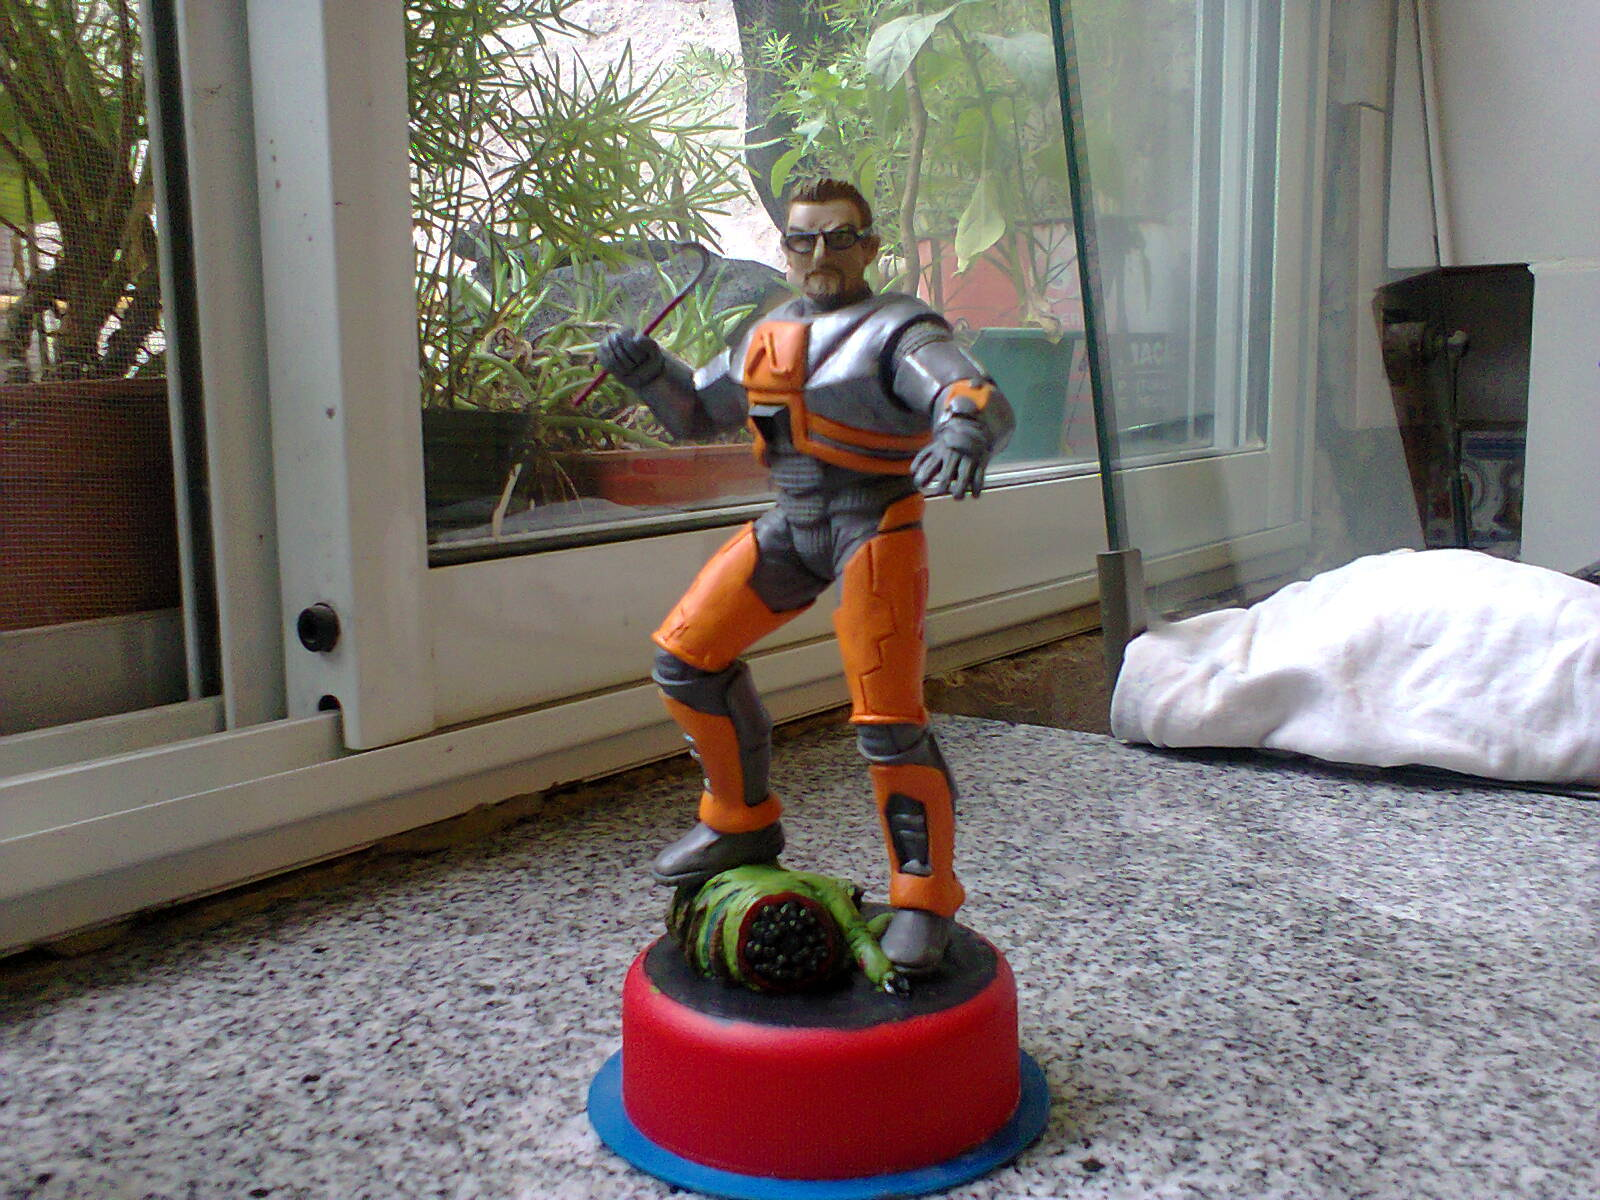 Tuneando un iron man en un Gordon Freeman